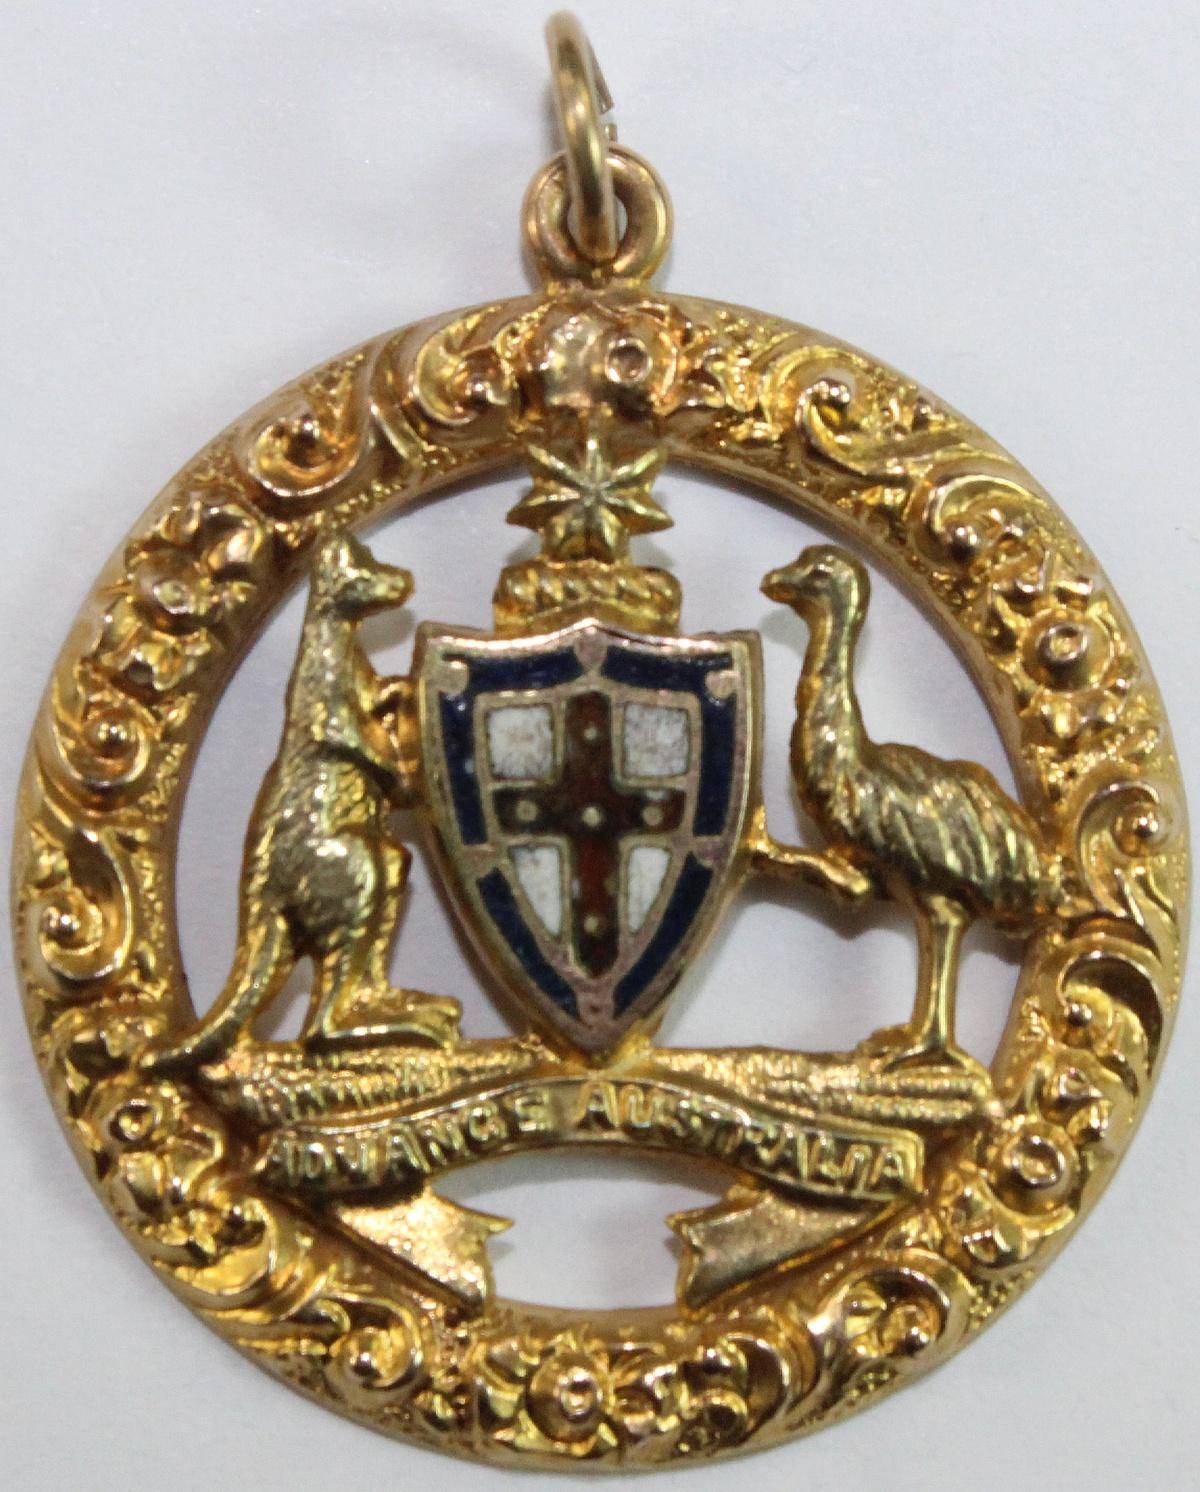 'Commonwealth of Australia' Patriotic Gold Fob in 12ct Gold by Willis & Sons (Melb) circa 1901